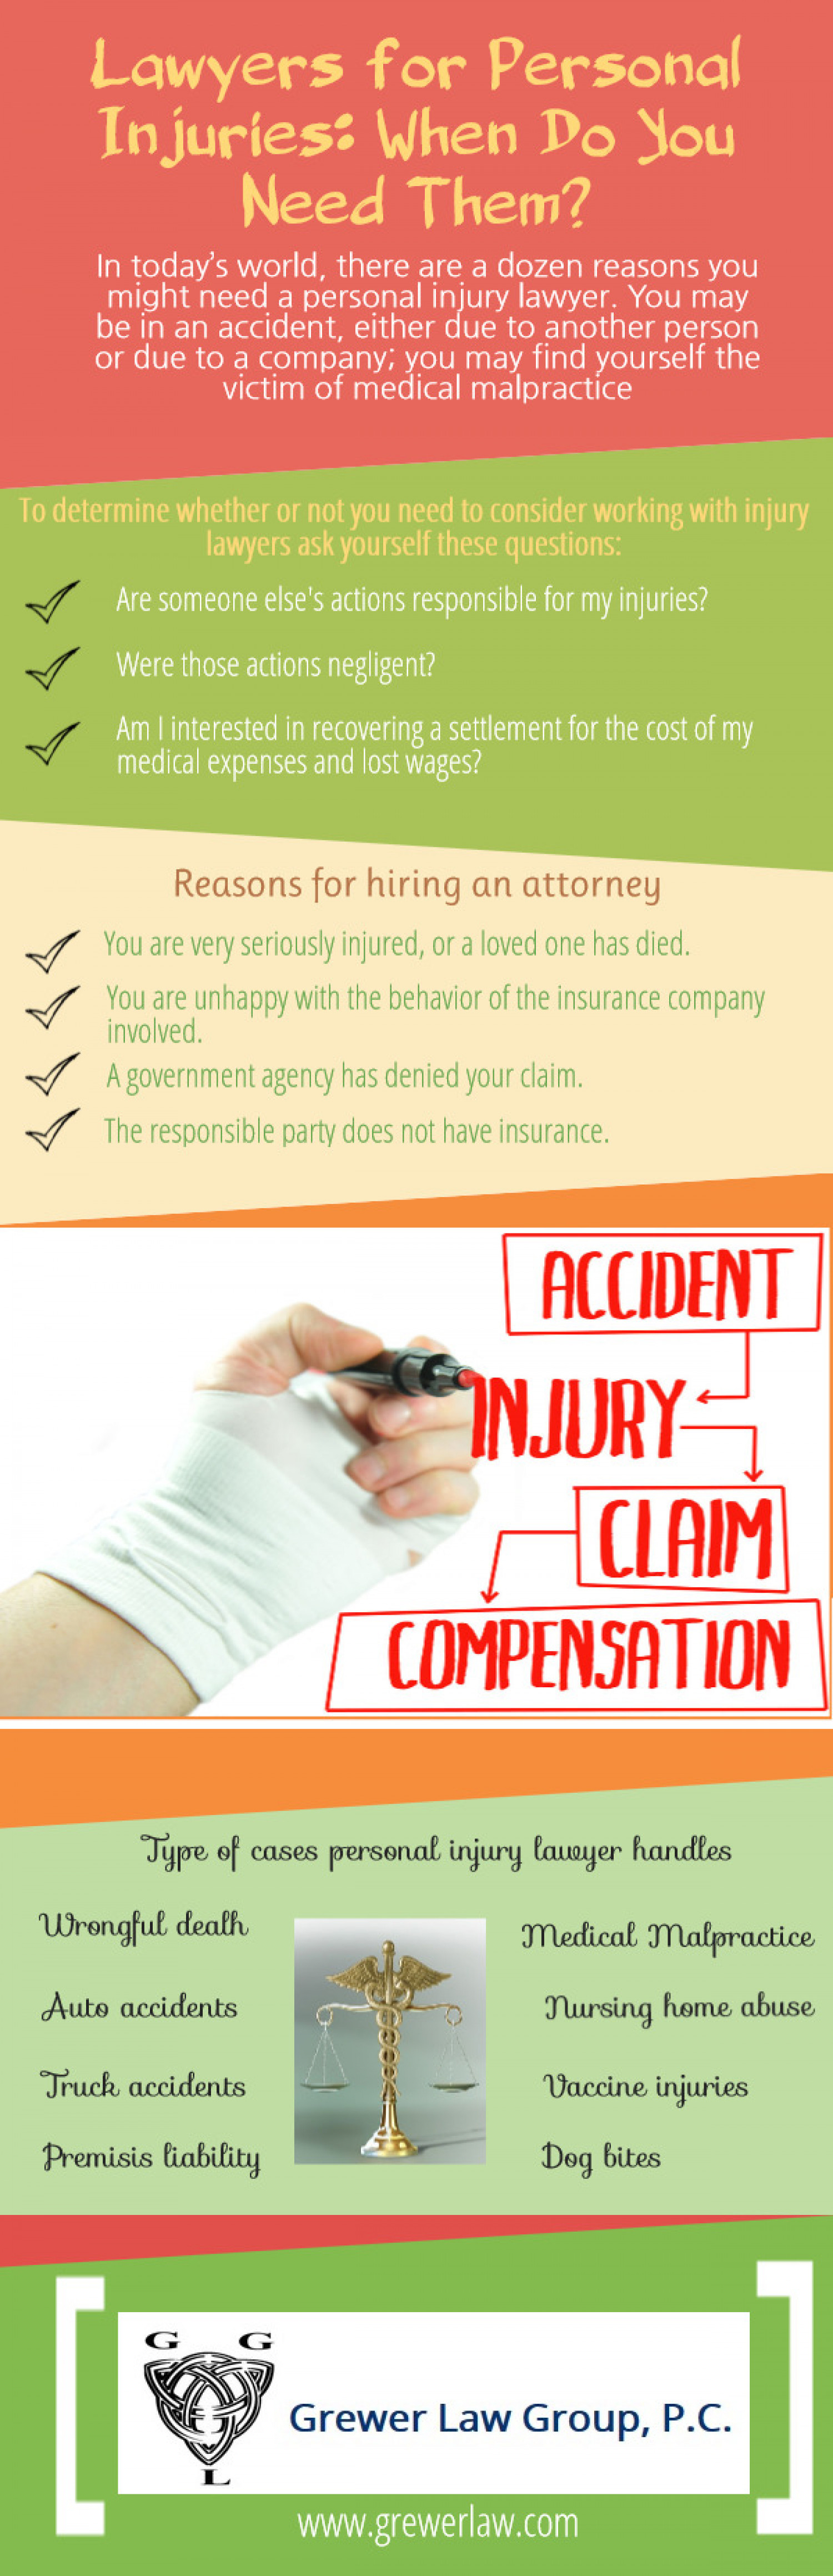 All about personal injury lawyers - When do you need them? Infographic